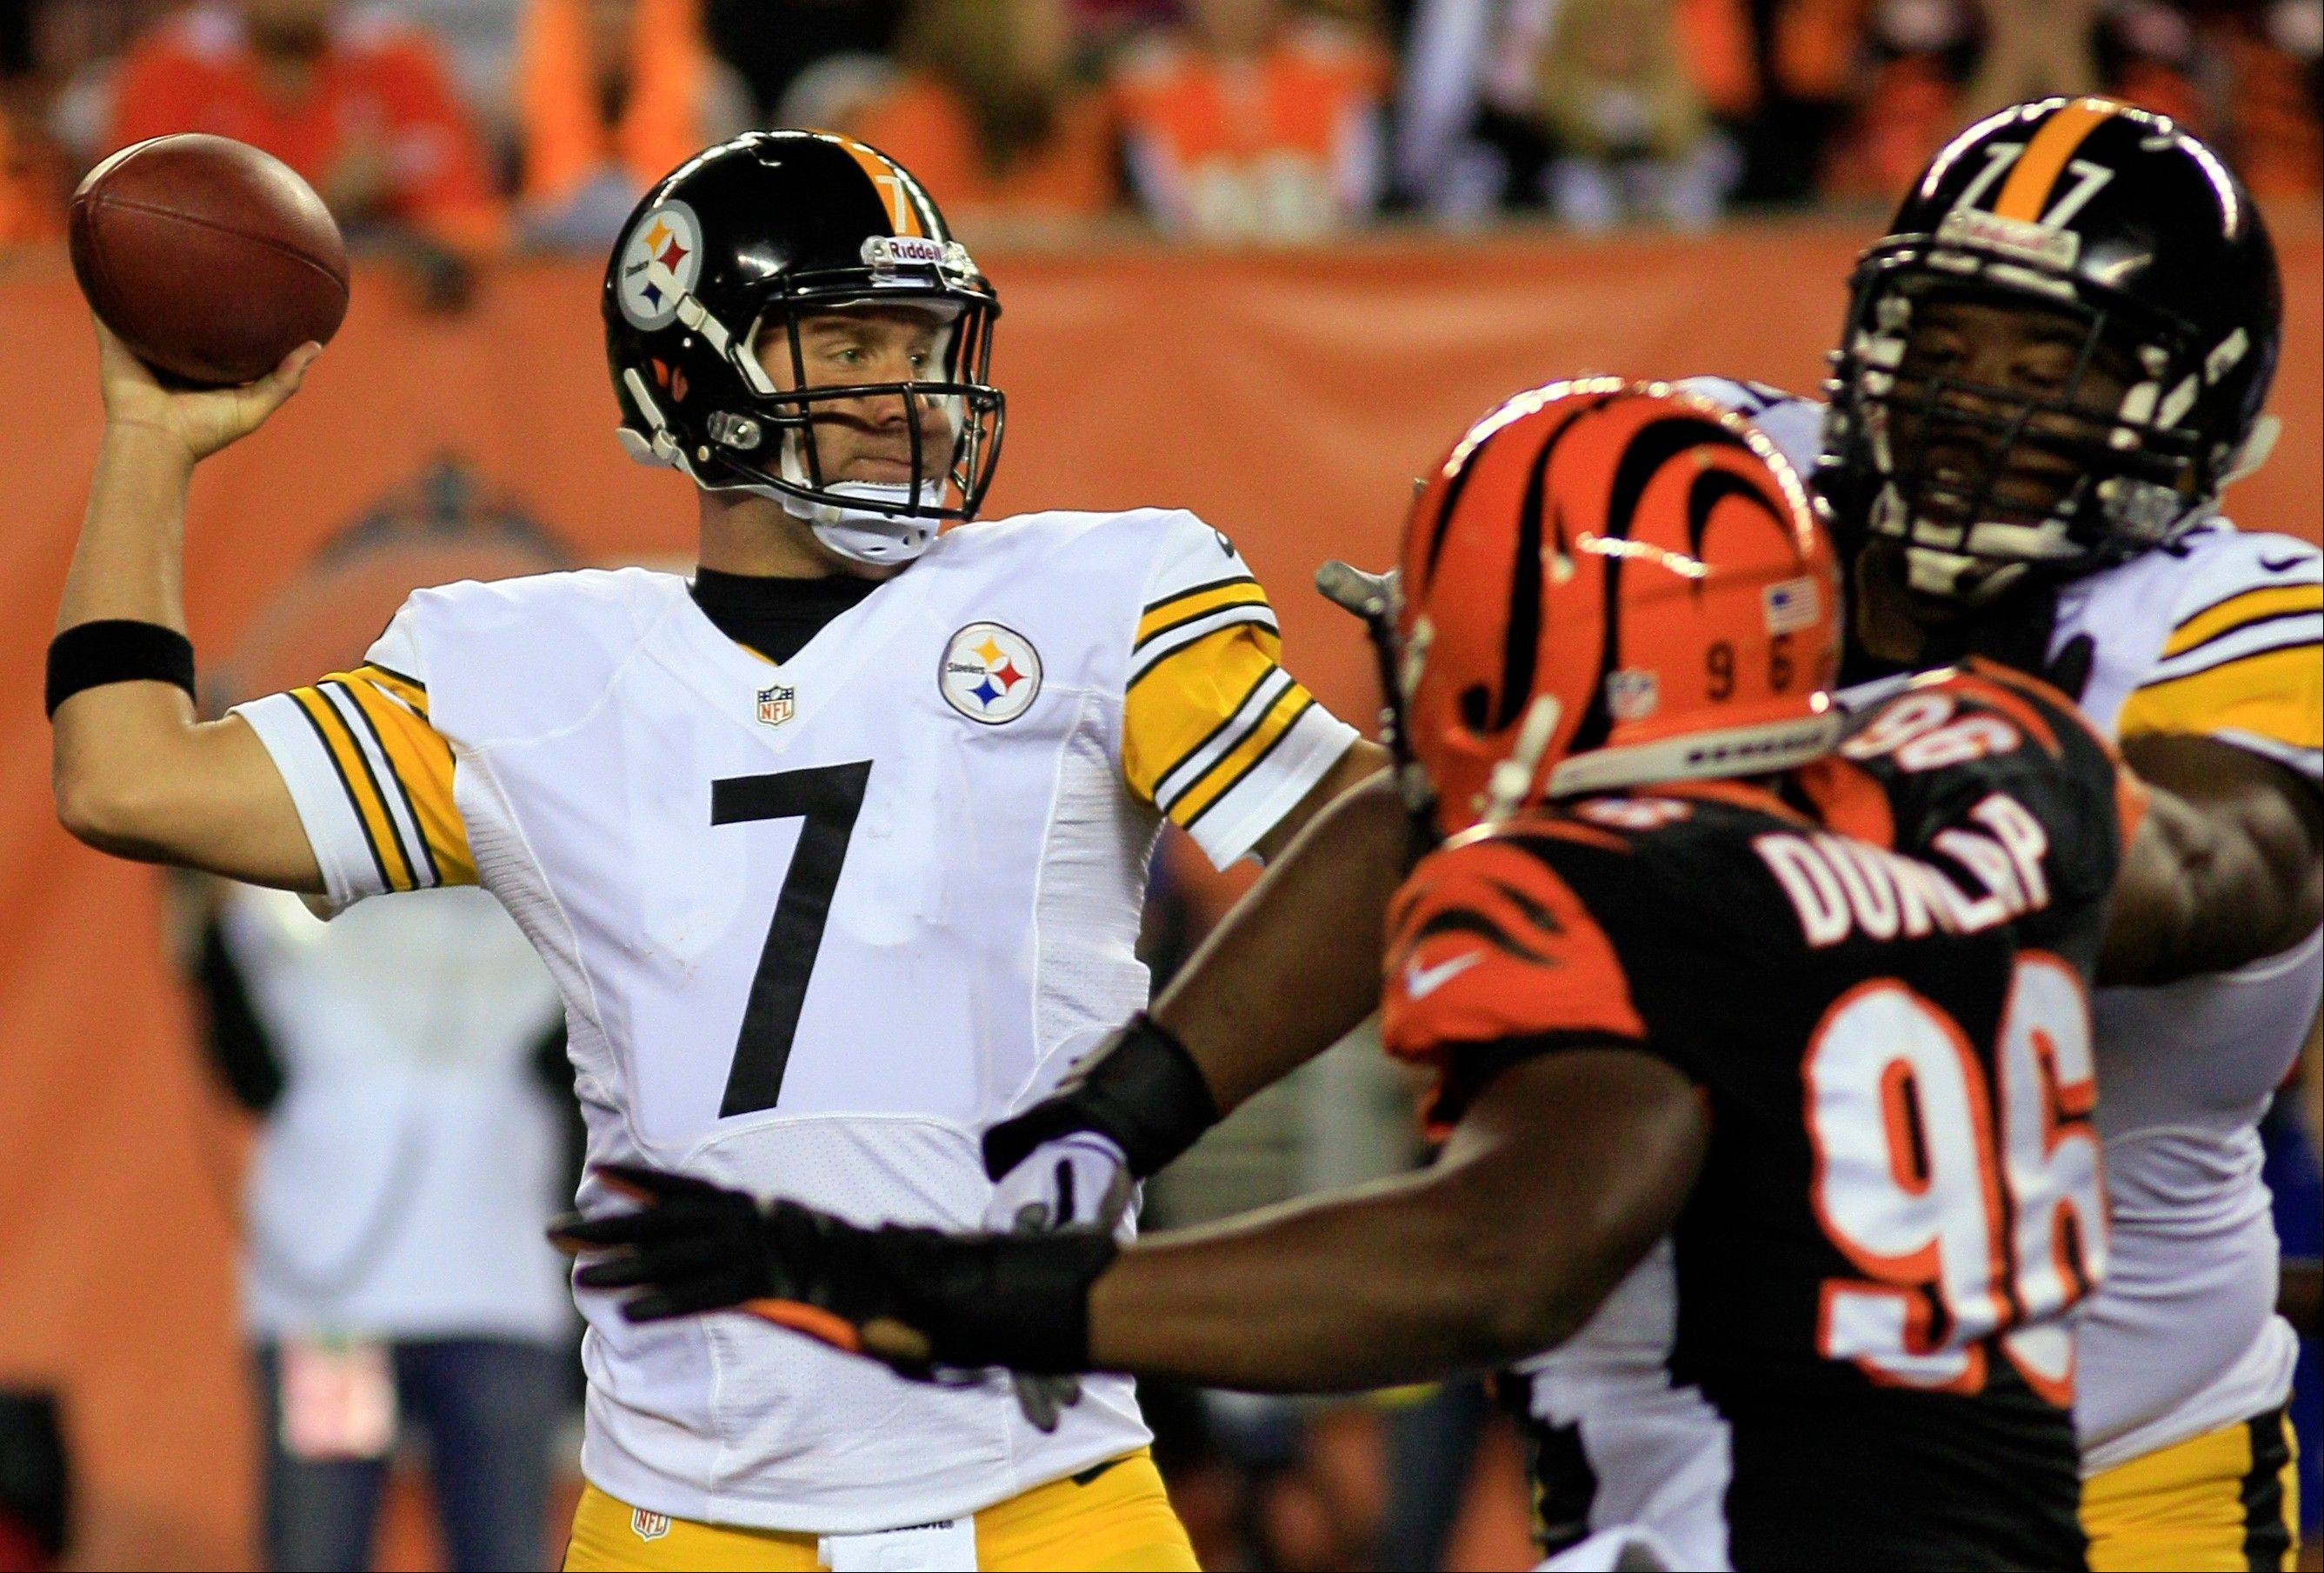 Pittsburgh quarterback Ben Roethlisberger will be looking for his team's first win of the season when the Steelers host the Chicago Bears on Sunday night.